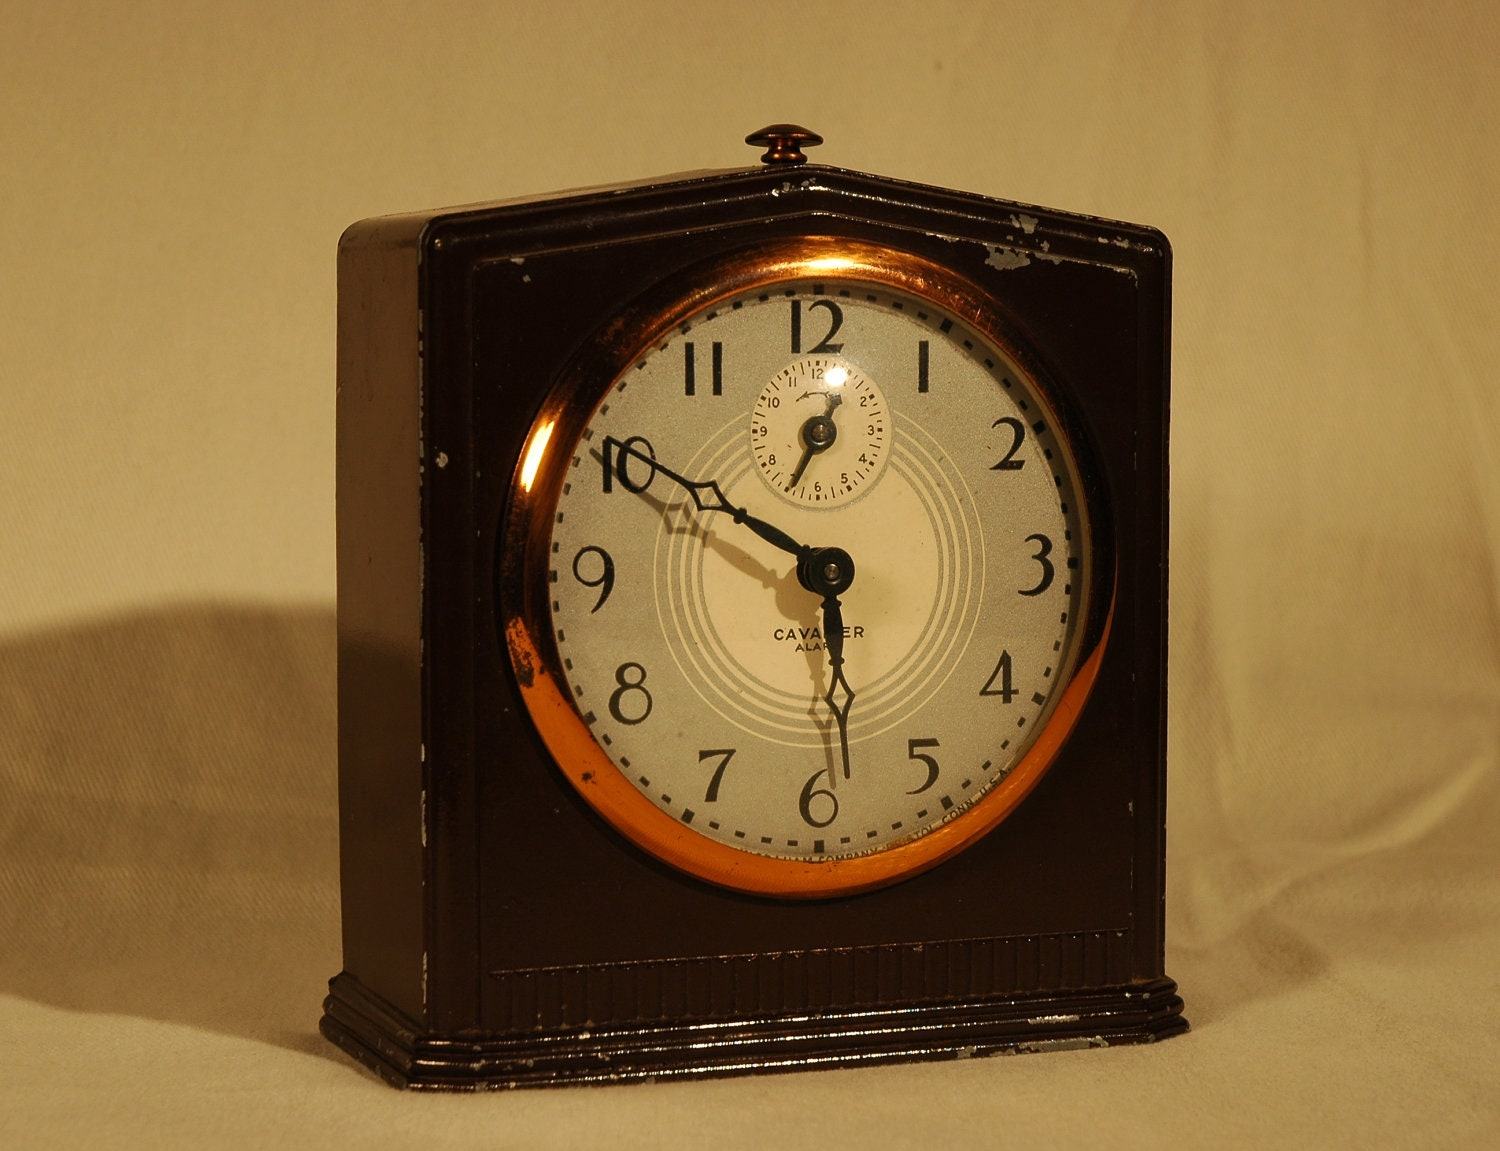 Vintage 1930s art deco ingraham cavalier windup alarm clock Art deco alarm clocks